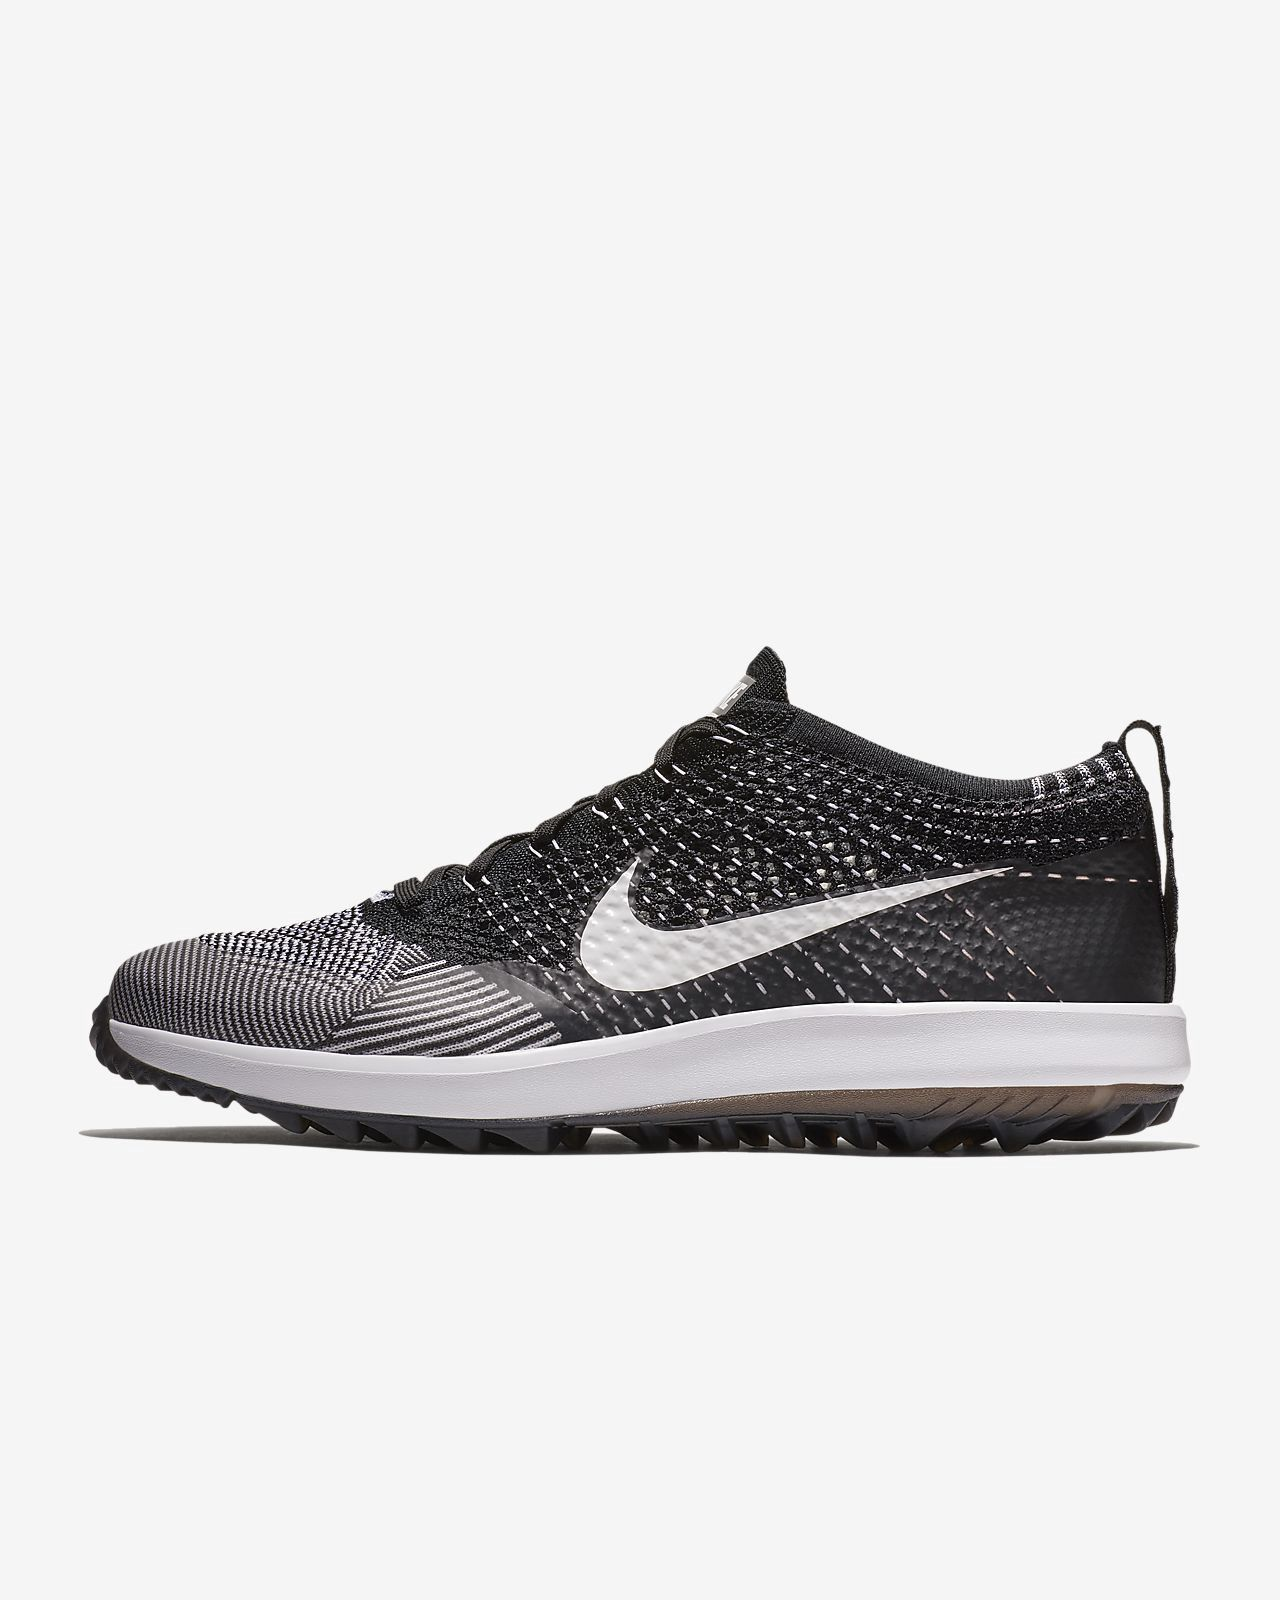 cc72db8b32408 Nike Flyknit Racer G Men's Golf Shoe - 7 in 2019 | Products | Mens ...